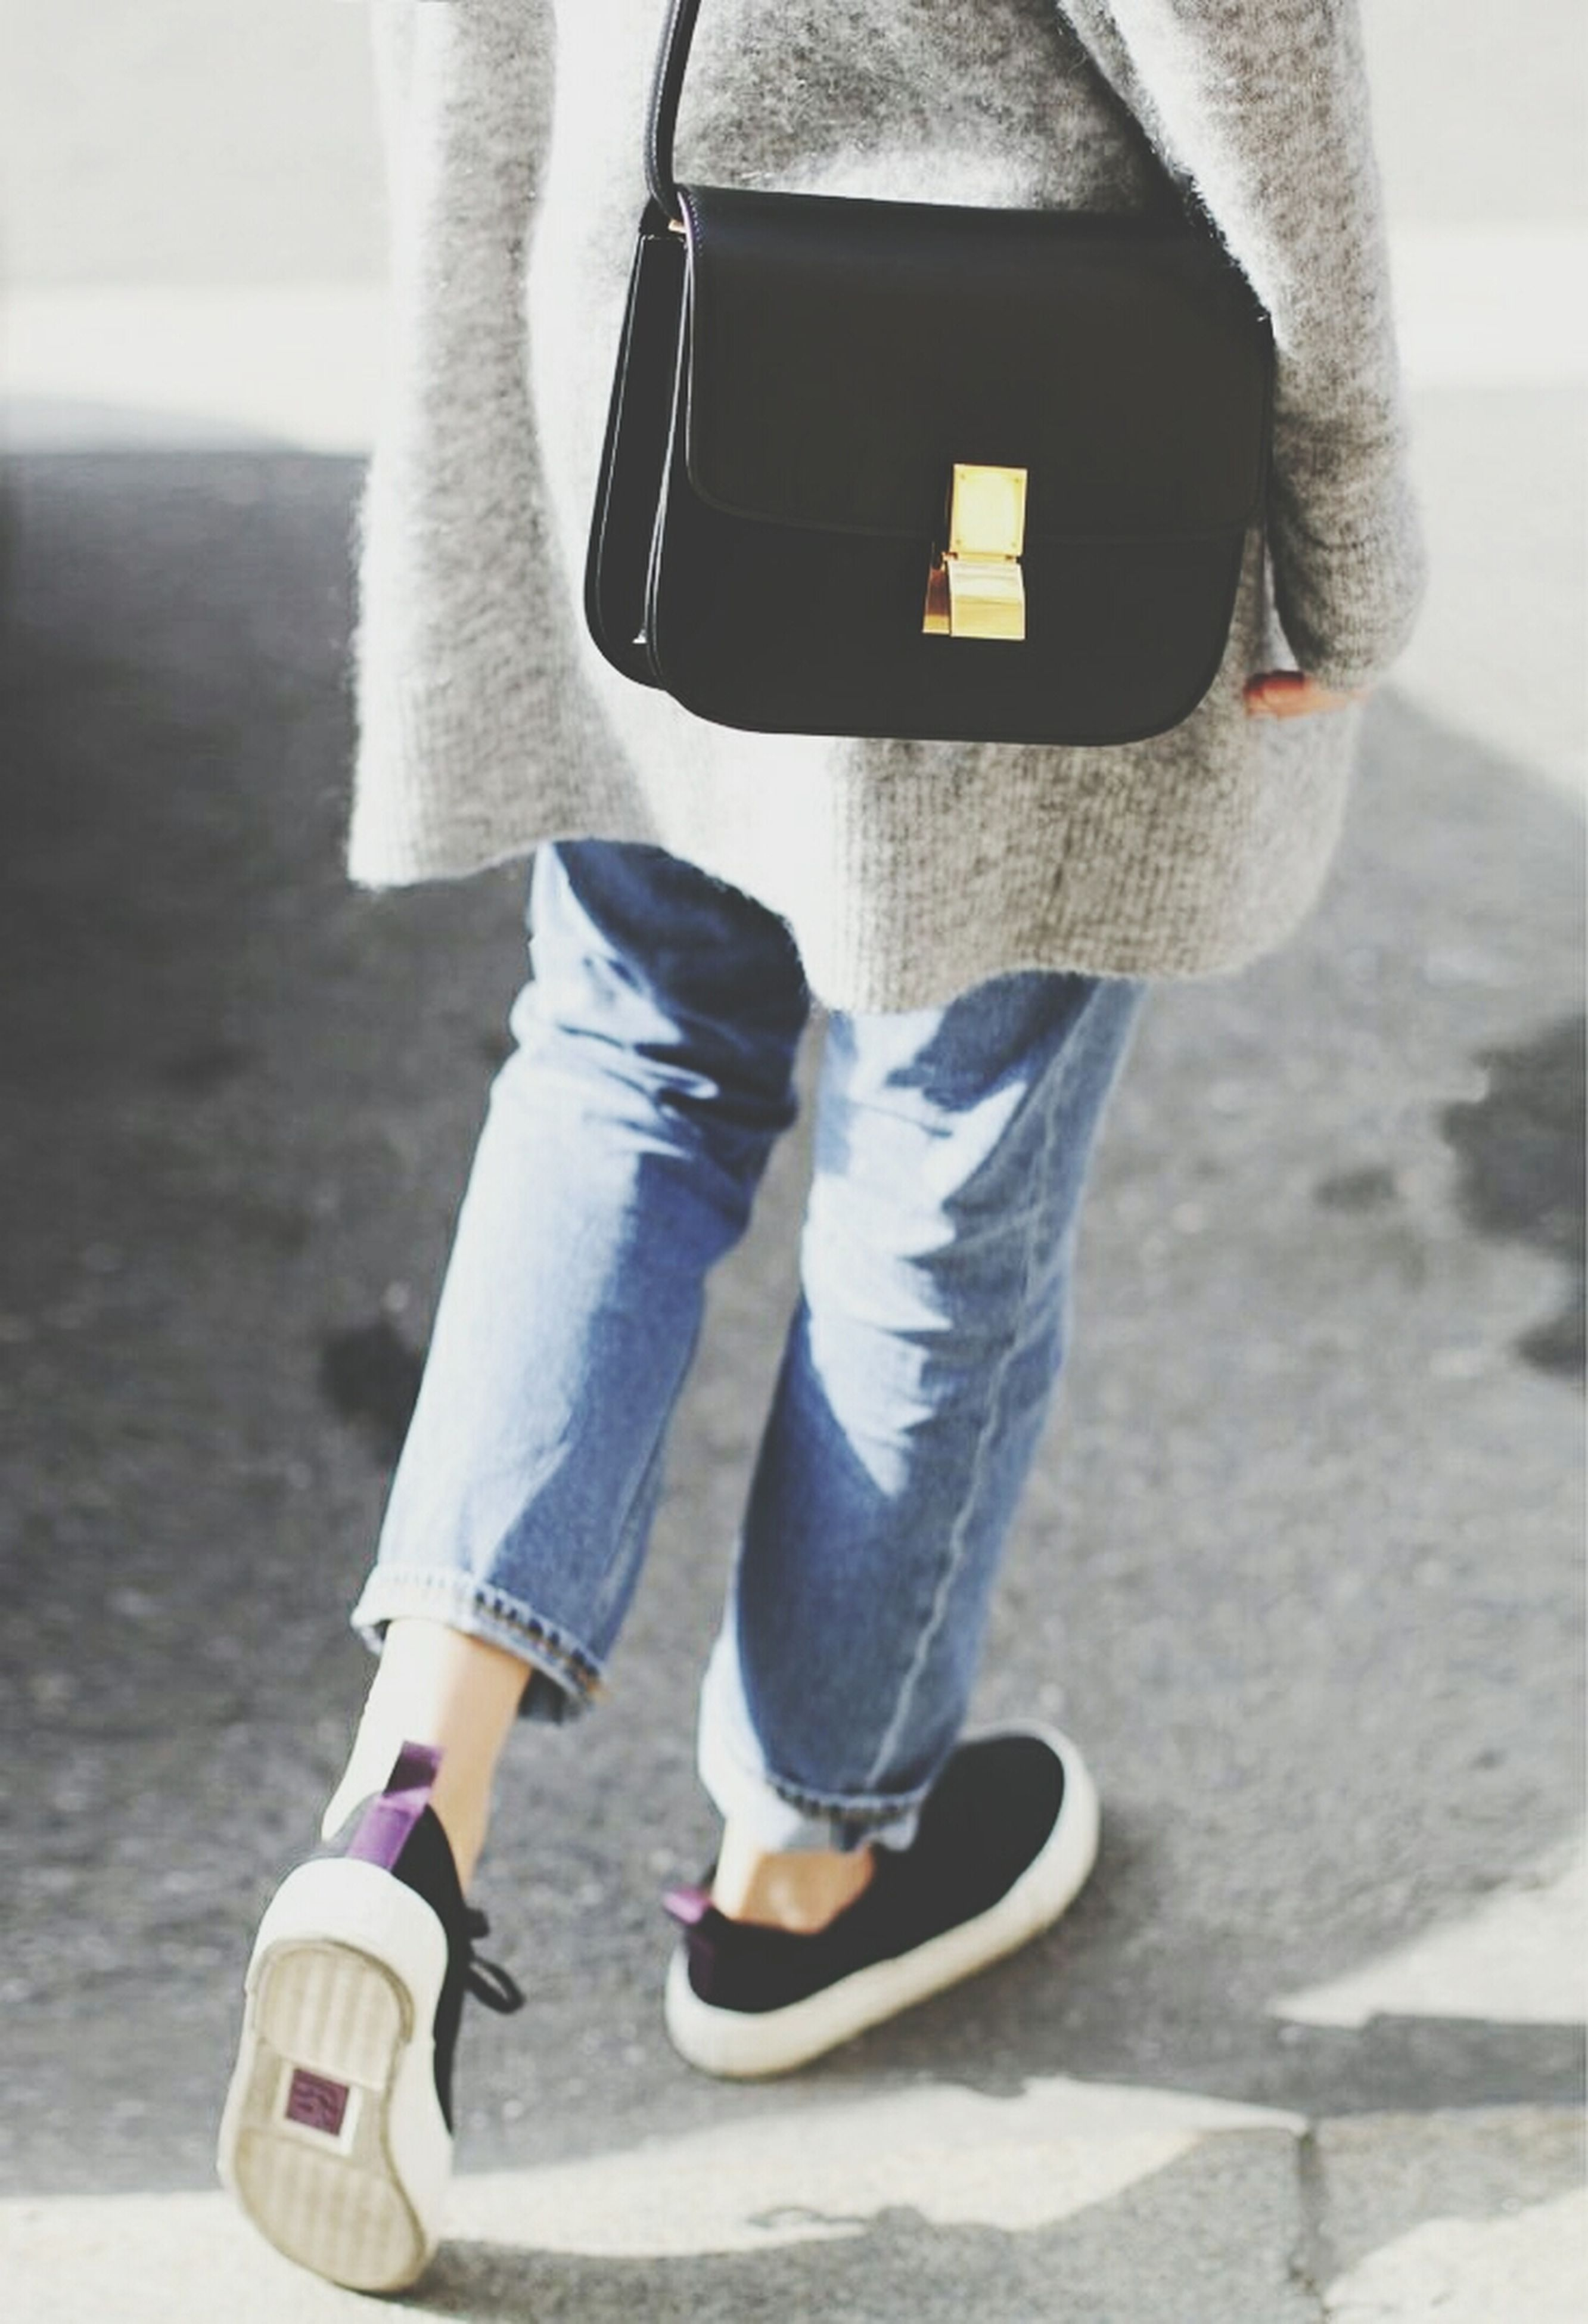 low section, person, shoe, lifestyles, standing, casual clothing, footwear, jeans, leisure activity, fashion, street, high heels, skateboard, day, human foot, men